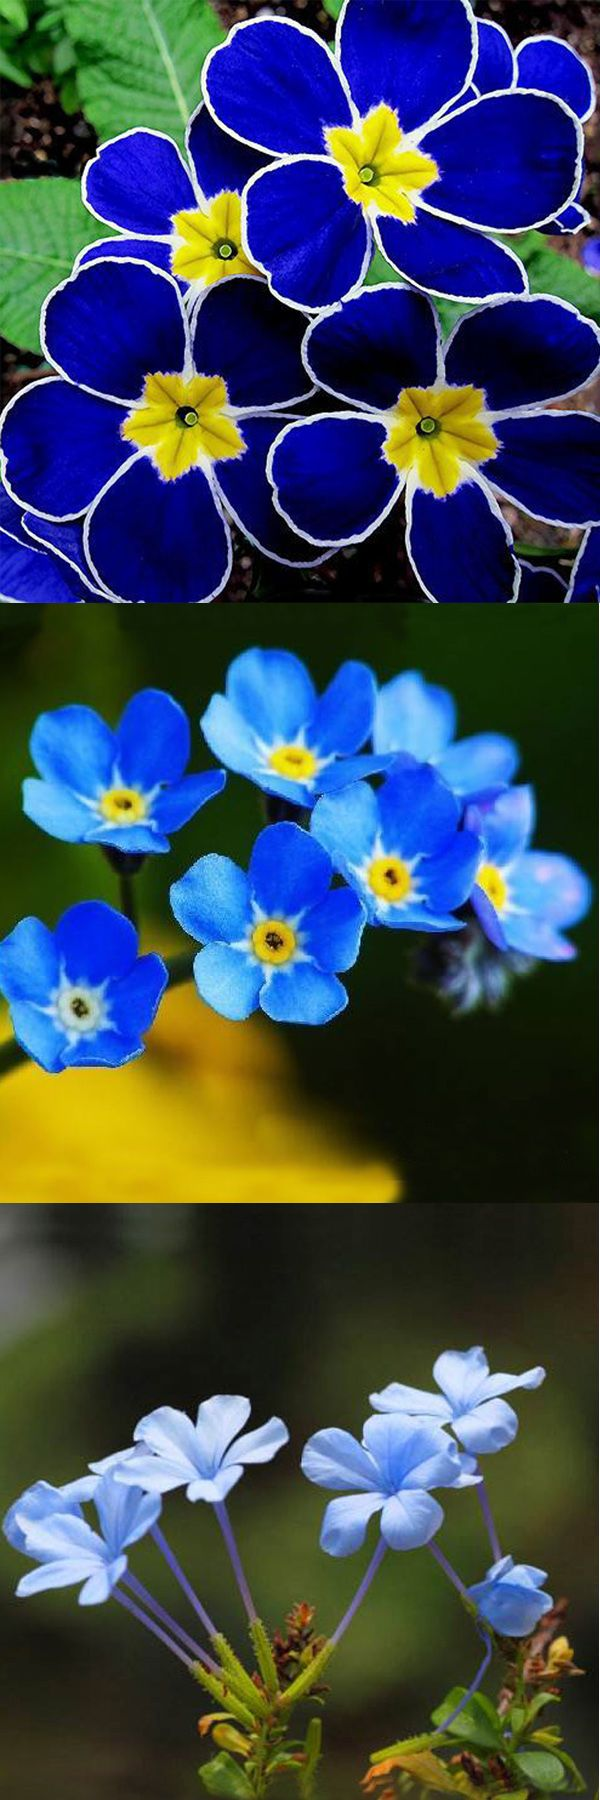 US$4.49 + free shipping.100Pcs Seeds, Blue Evening Primrose, Flower Bonsai, Garden Flower, Blue Flower, Gardening Decor, Flower Seeds